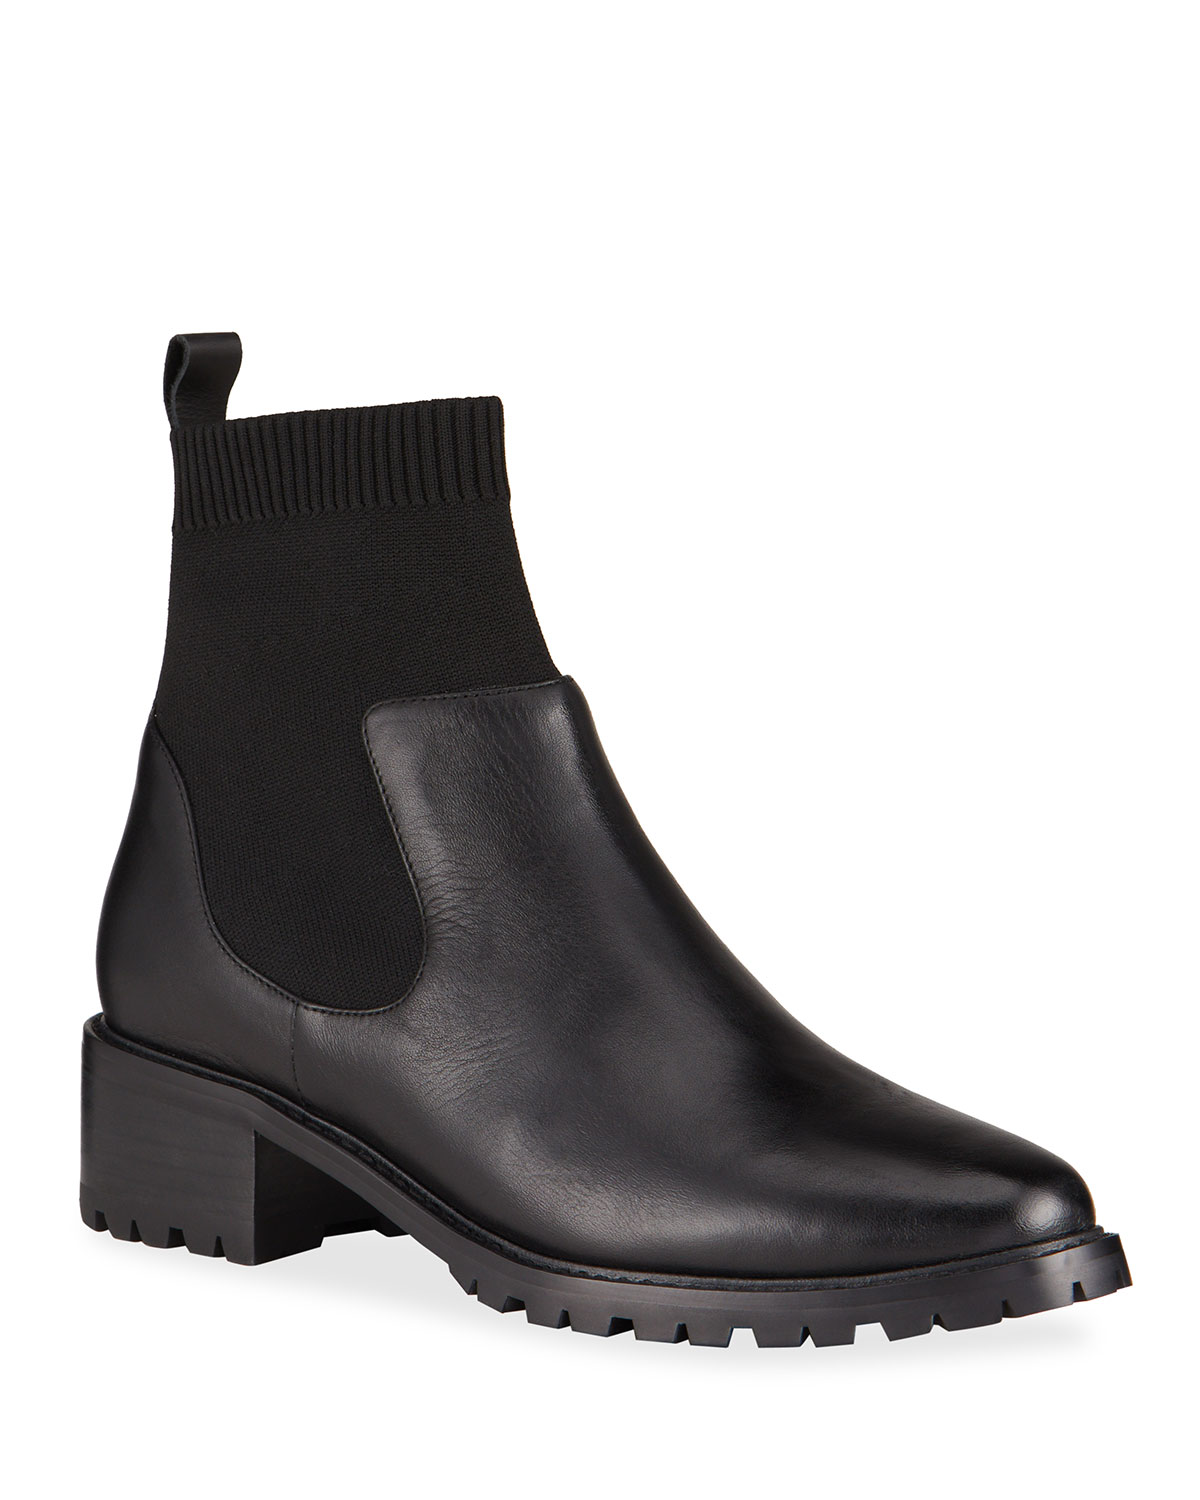 Kerry Knit Leather Ankle Booties